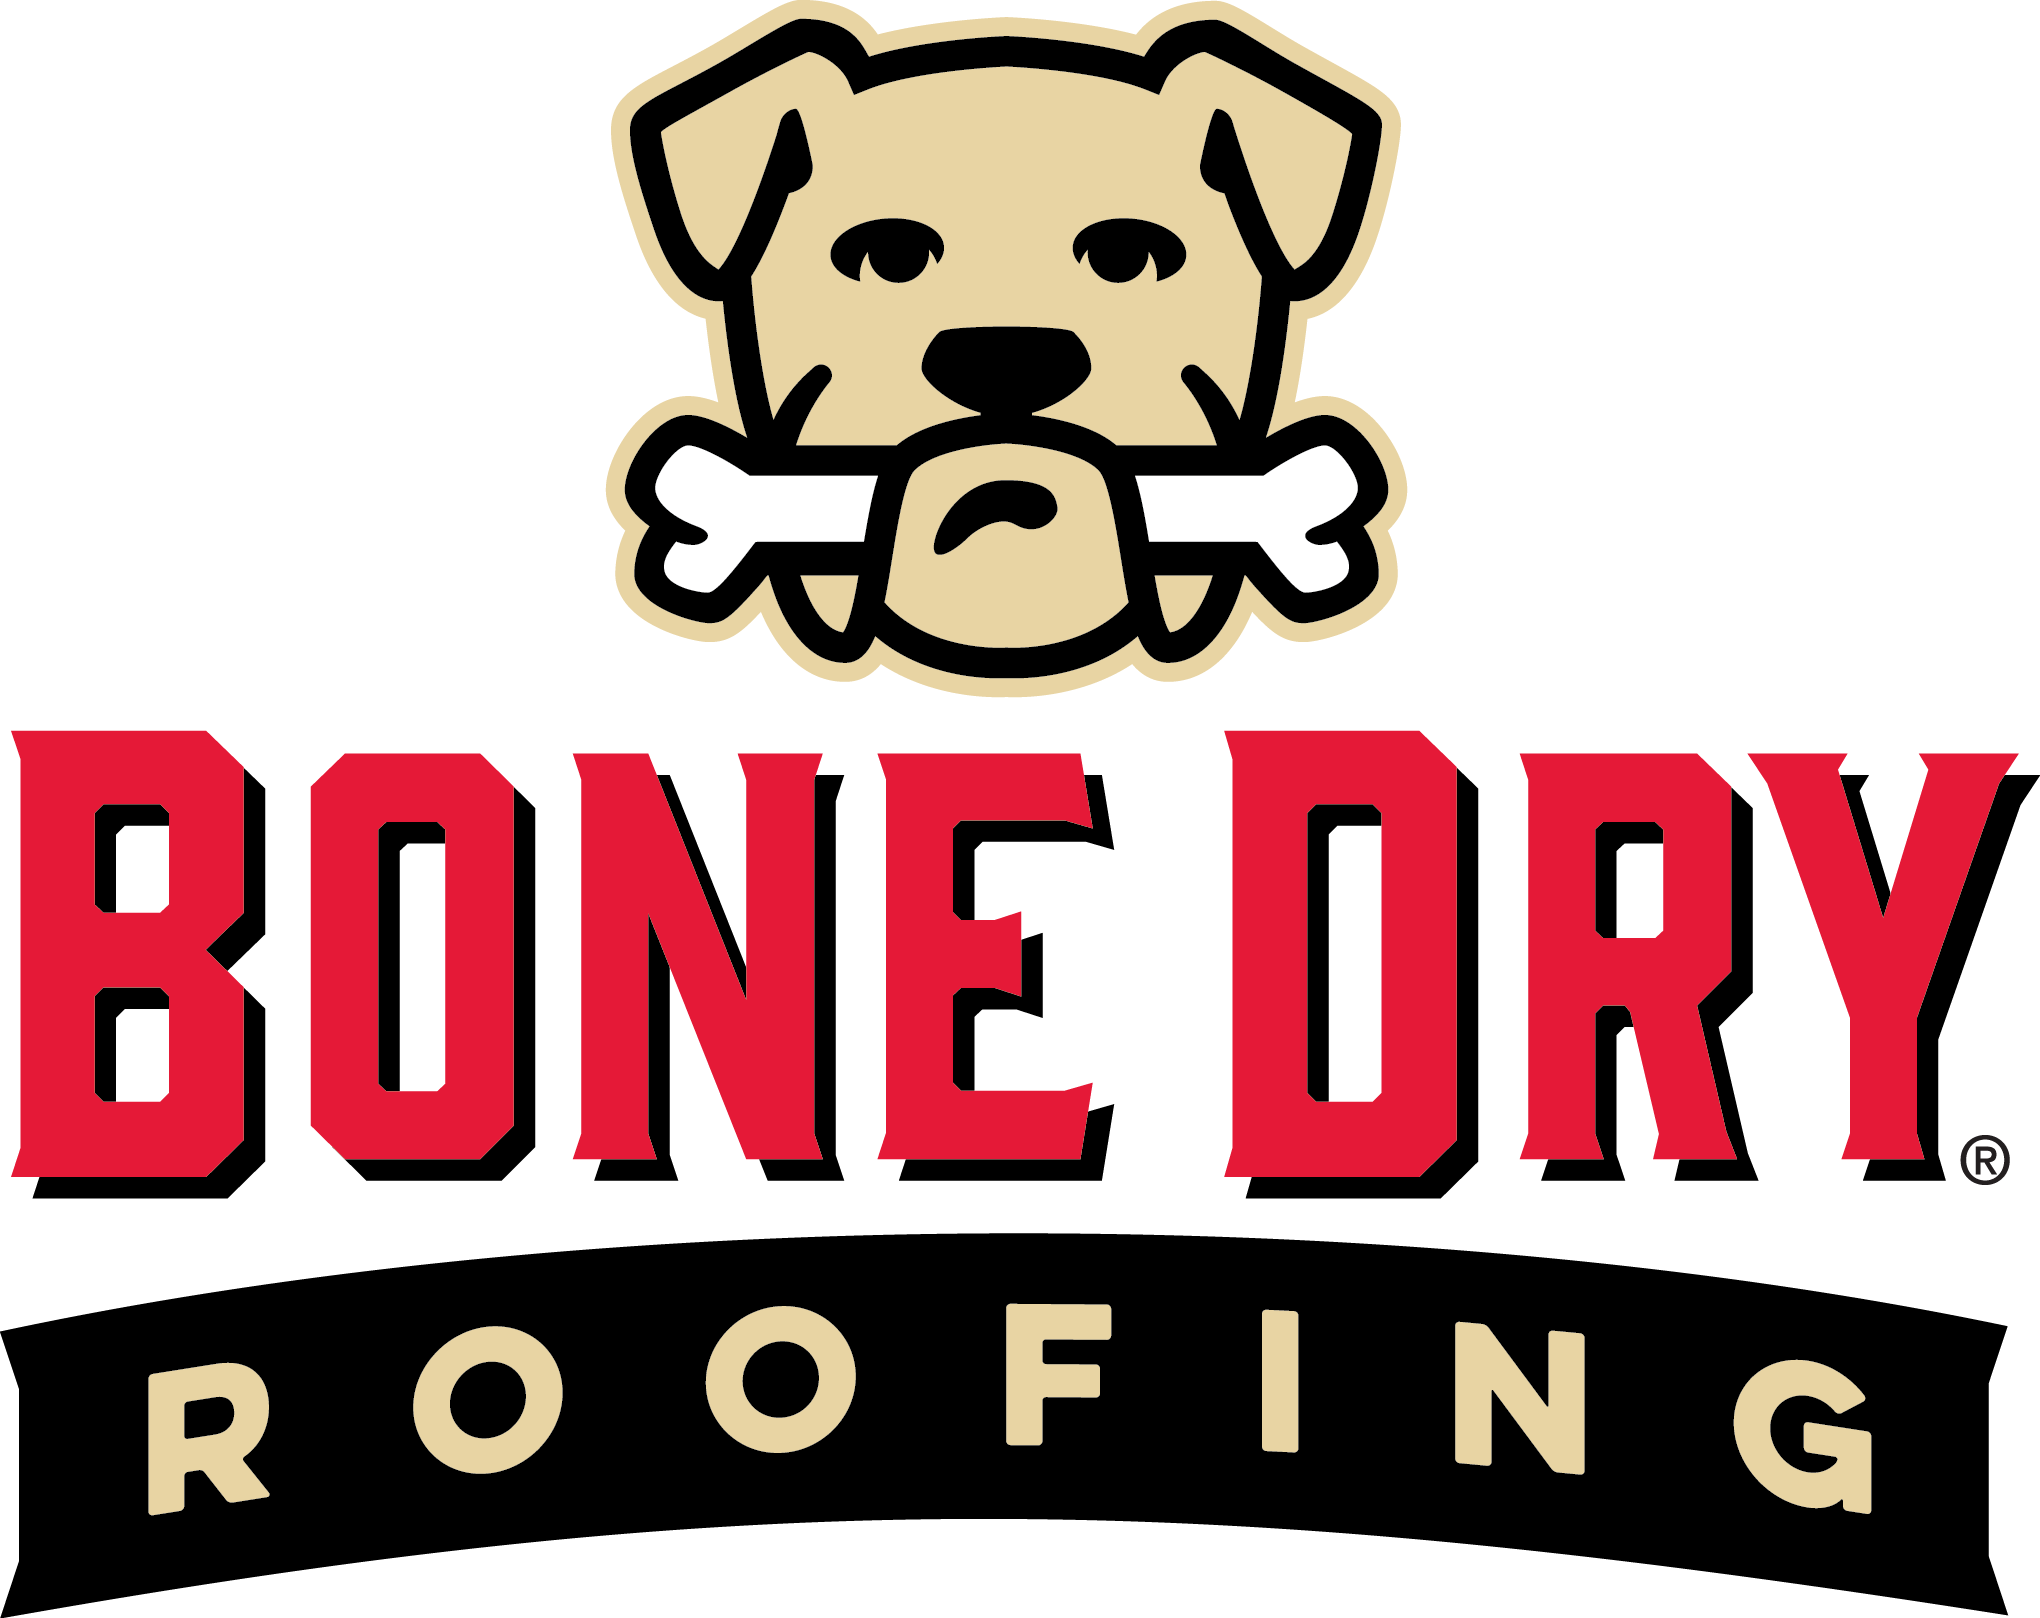 Bone Dry Roofing is a Top-Rated Roofing Company in Hillard, OH